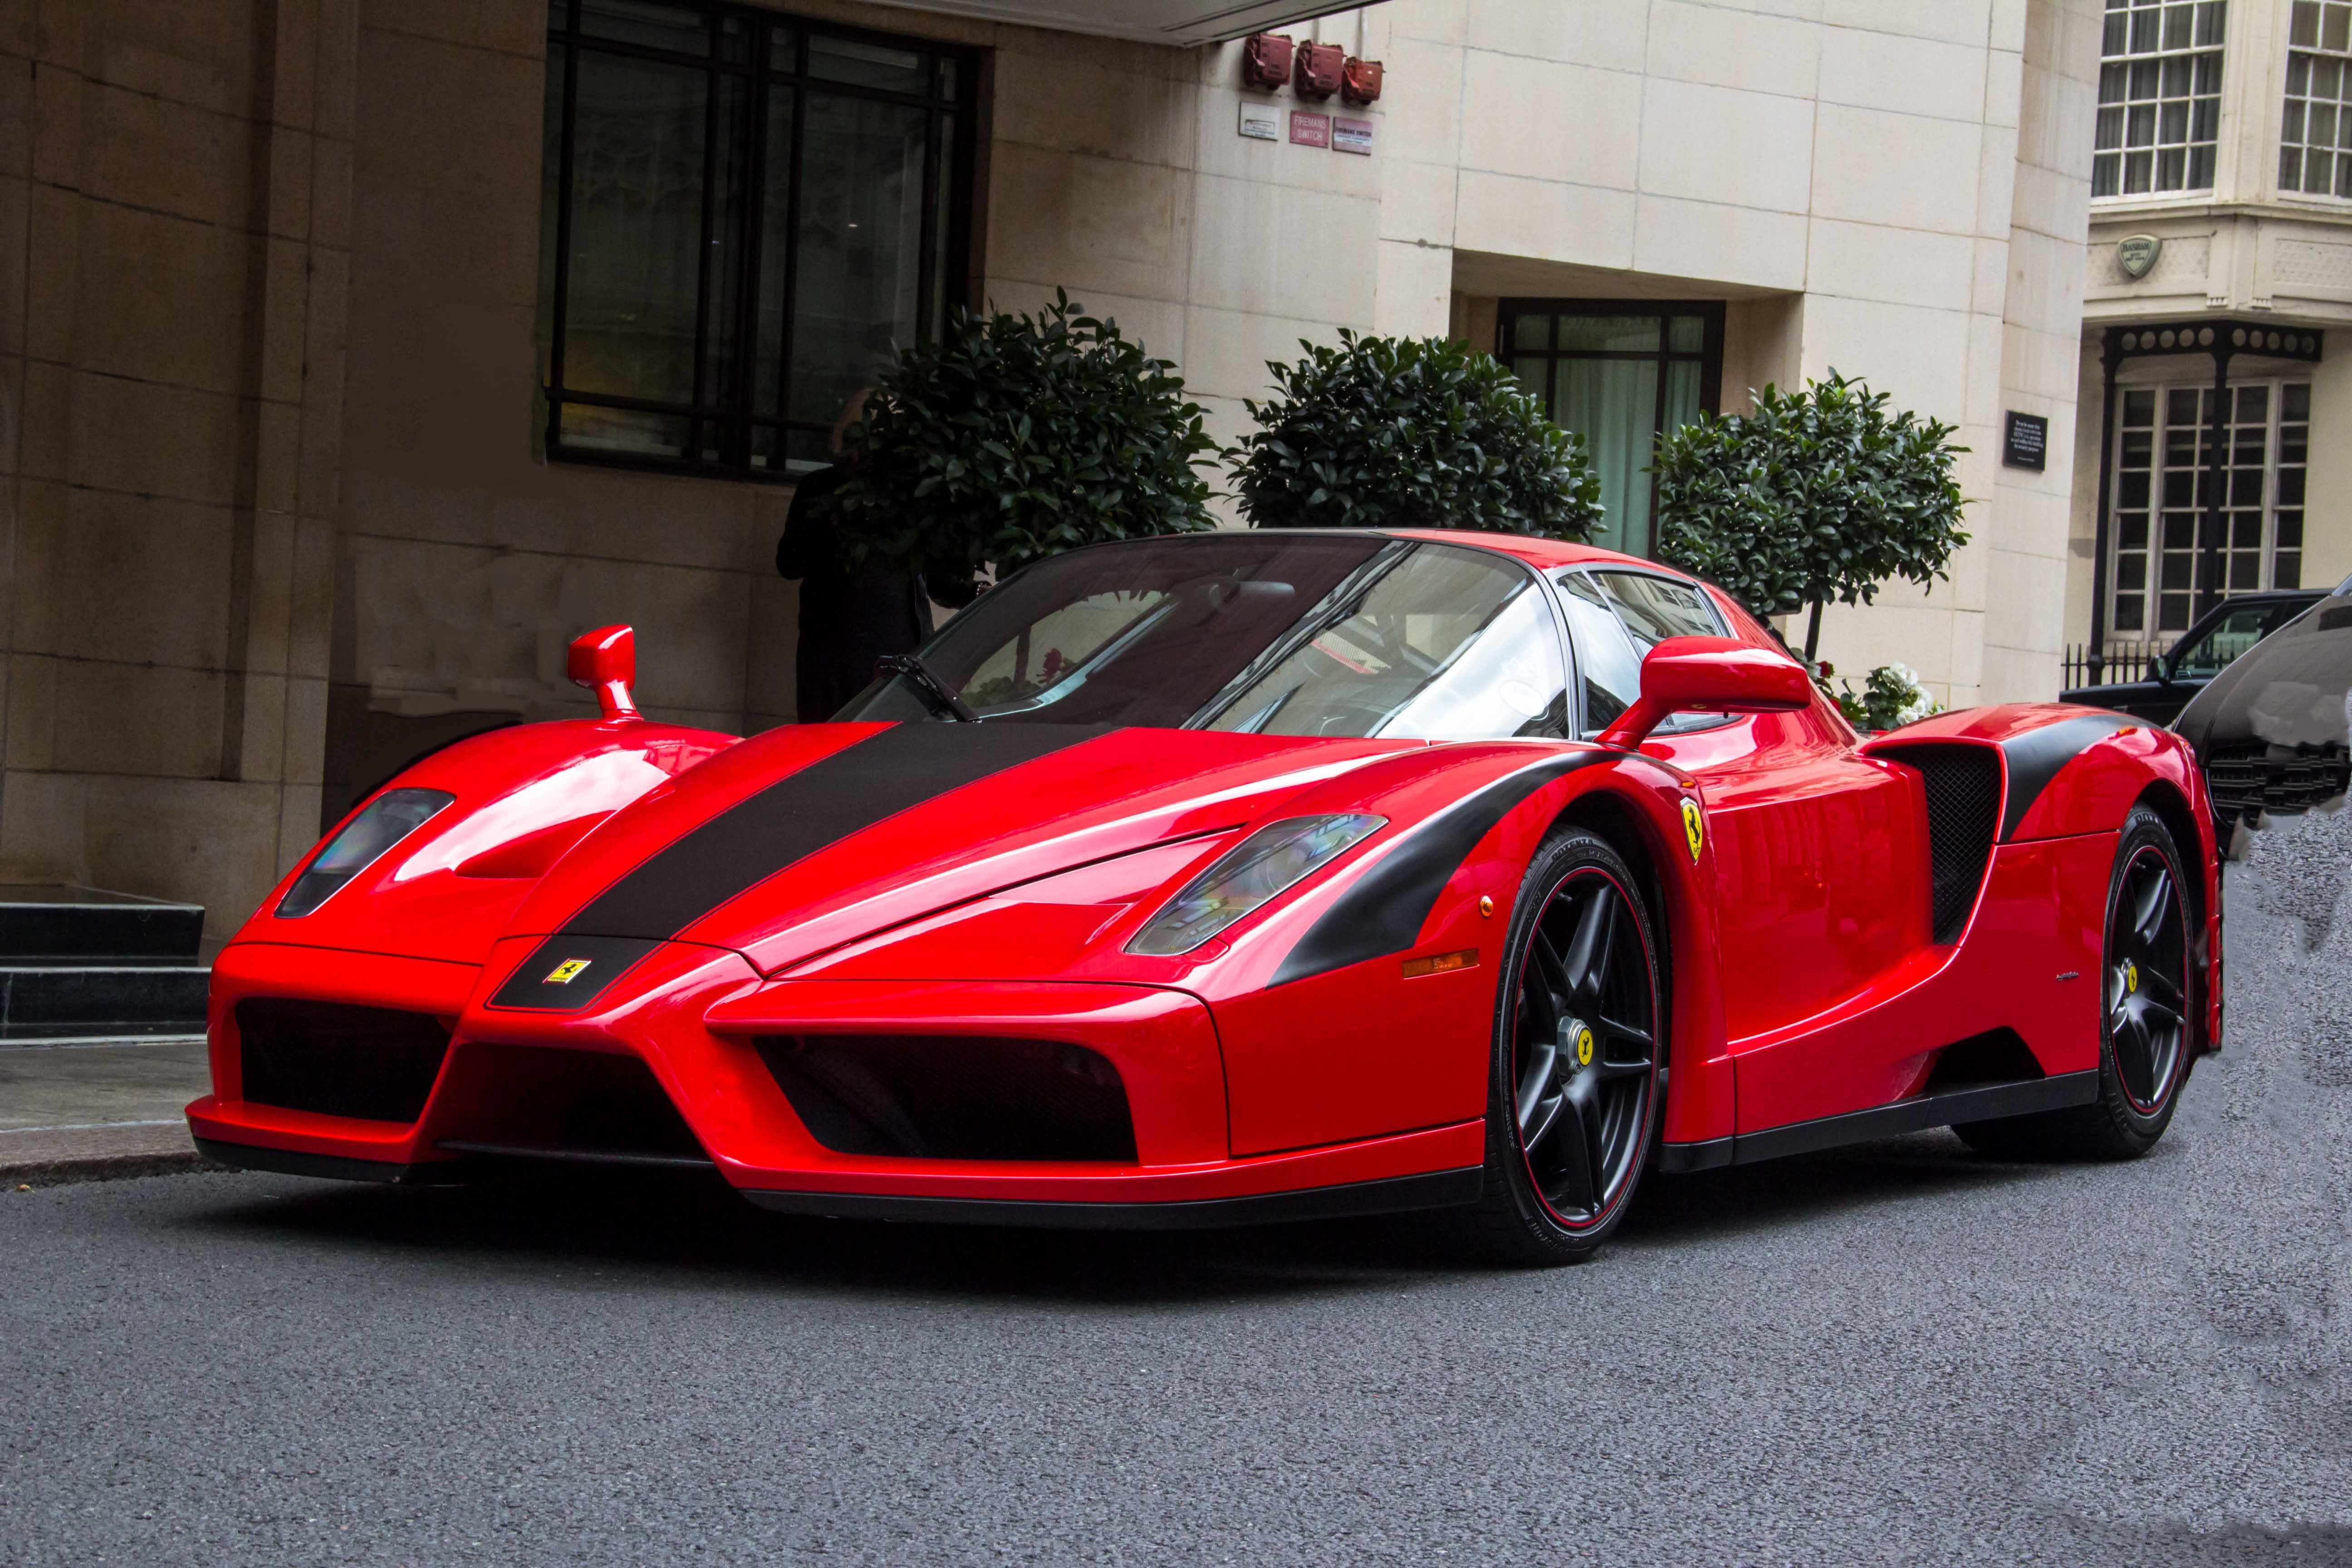 Ferrari Enzo Photos, Informations, Articles - BestCarMag.com